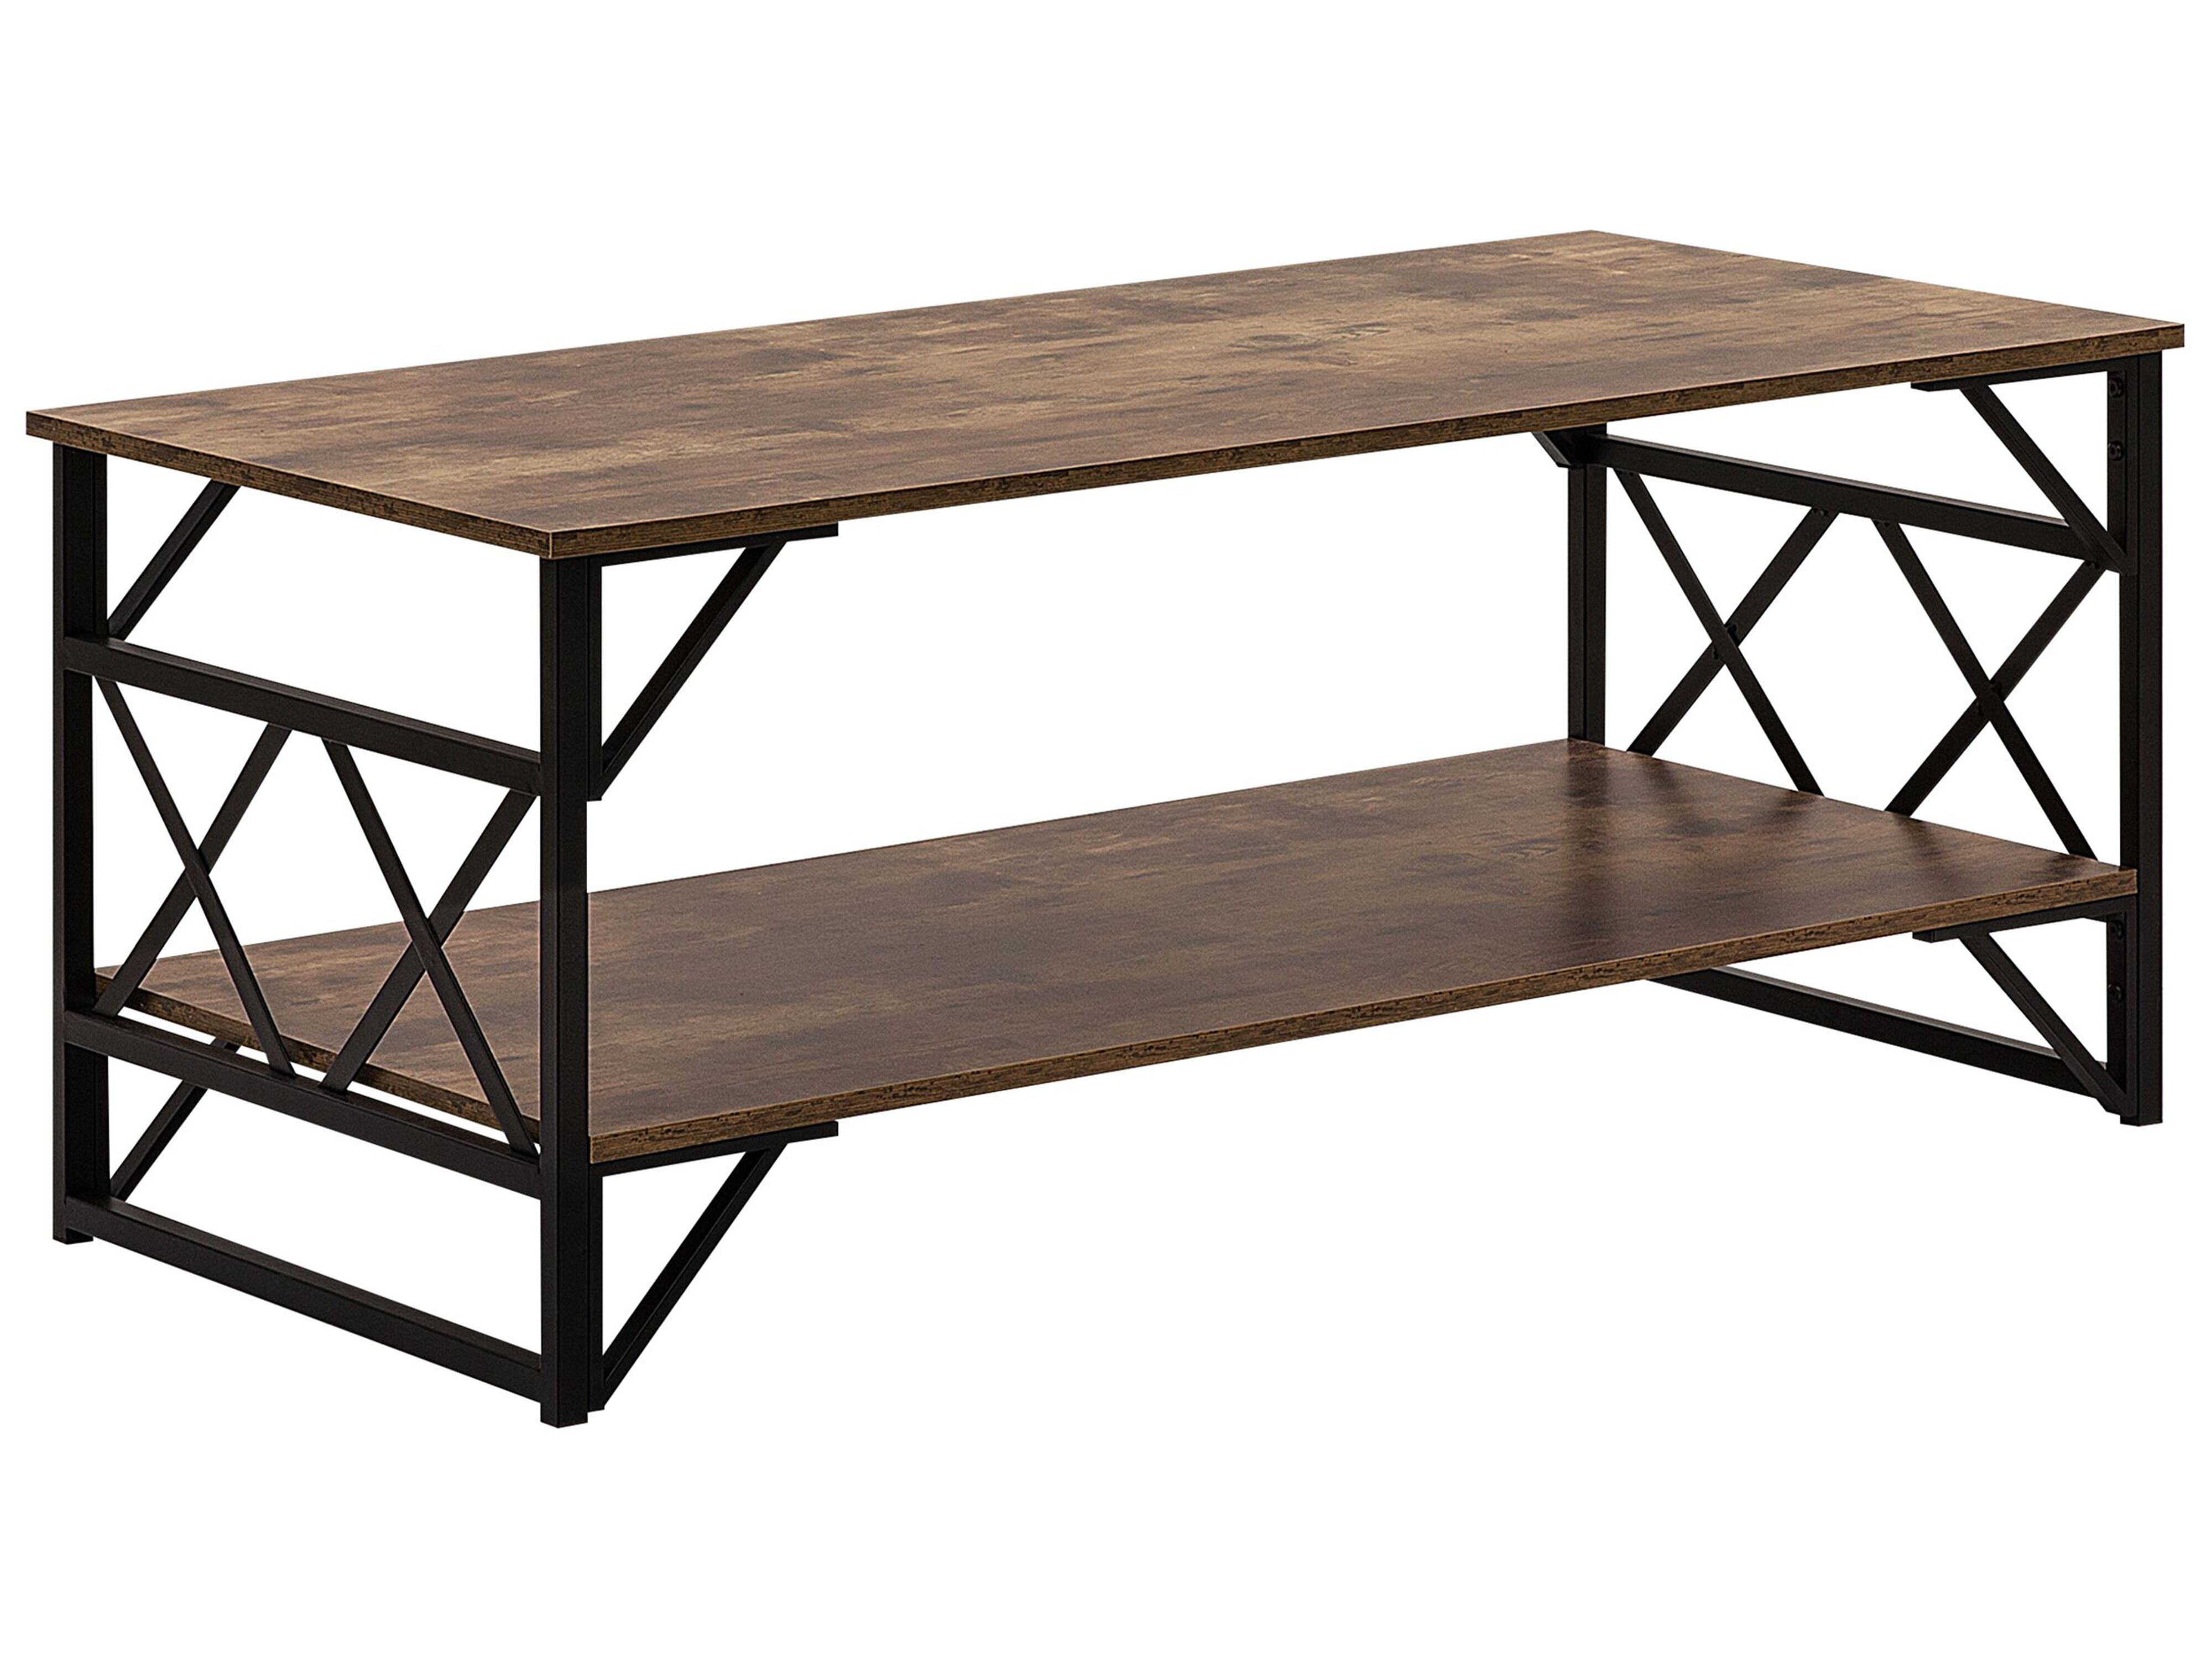 Coffee Table Dark Wood With Black Bolton Furniture Lamps Accessories Up To 70 Off Avandeo Online Store